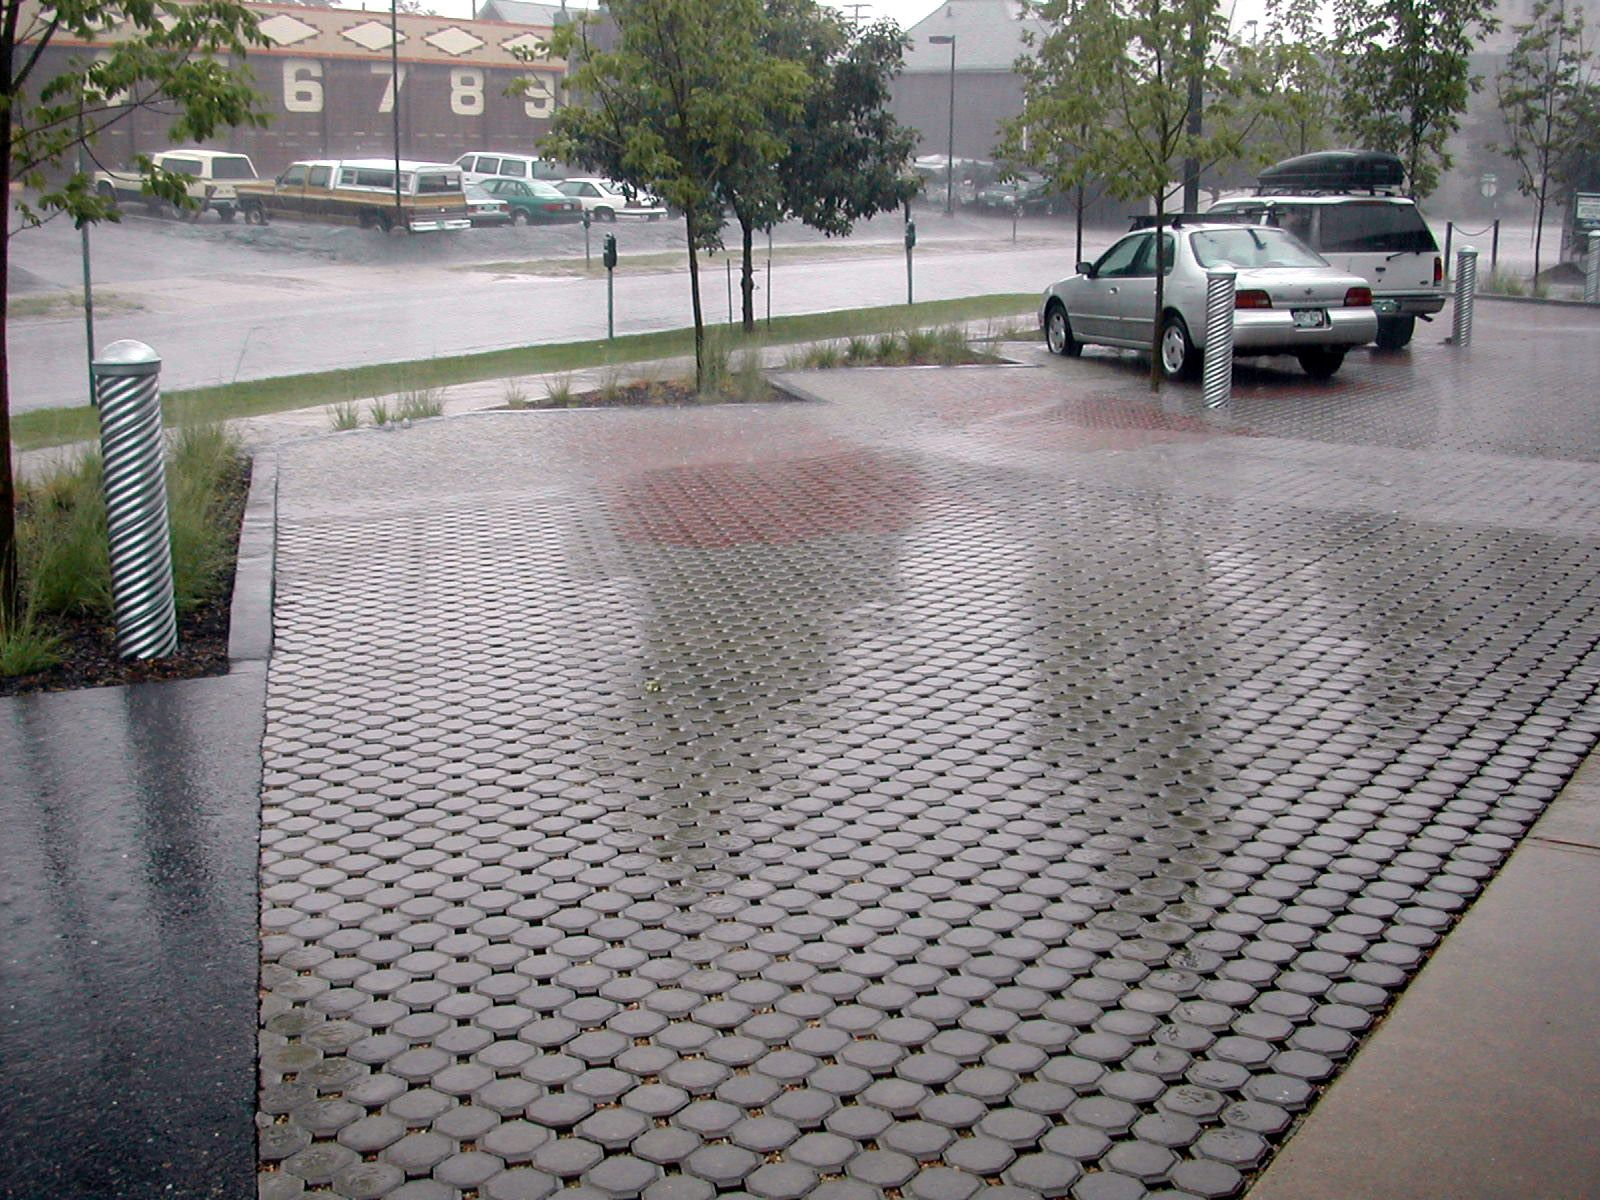 Permeable Paving In Parking Lot Sustainable Materials